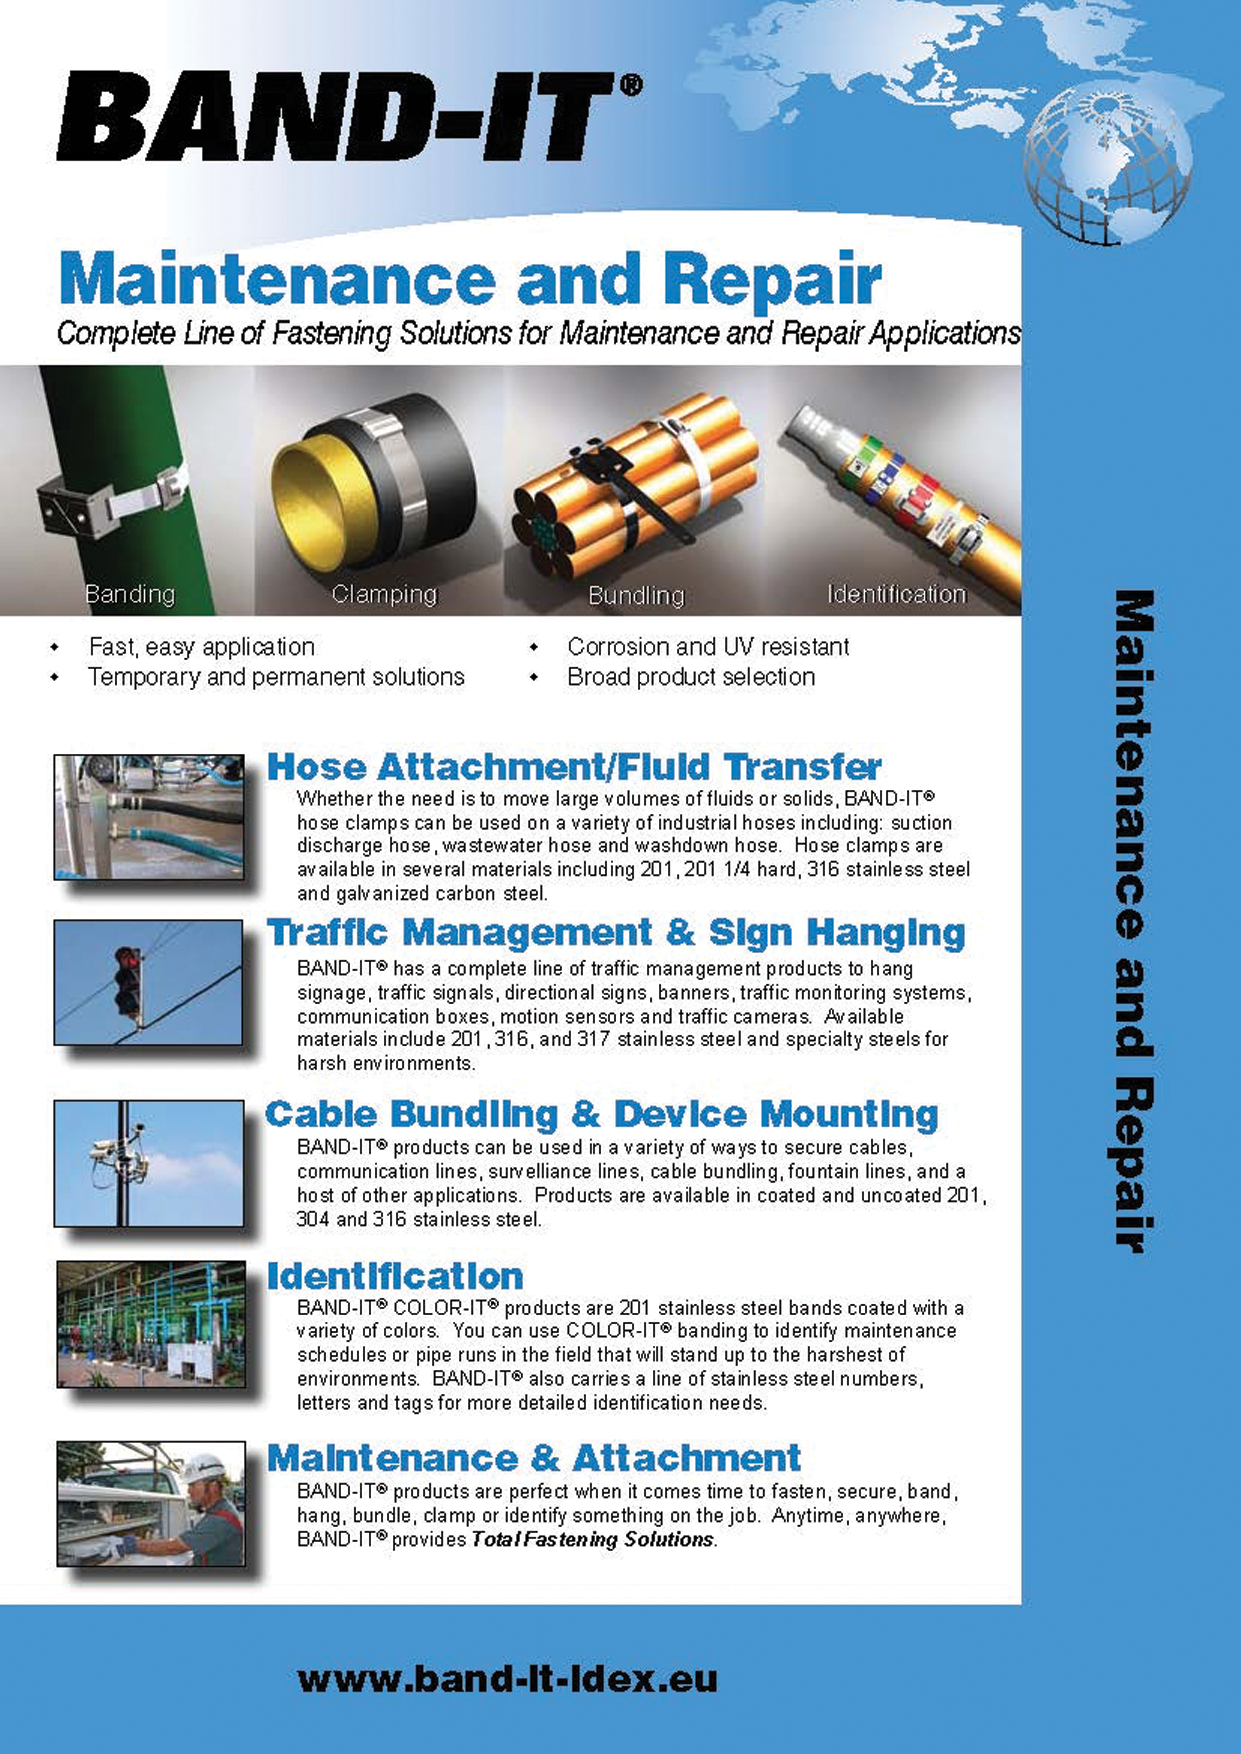 Maintenance and Repair - Complete Line of Fastening Solutions for Facility Maintenance Applications